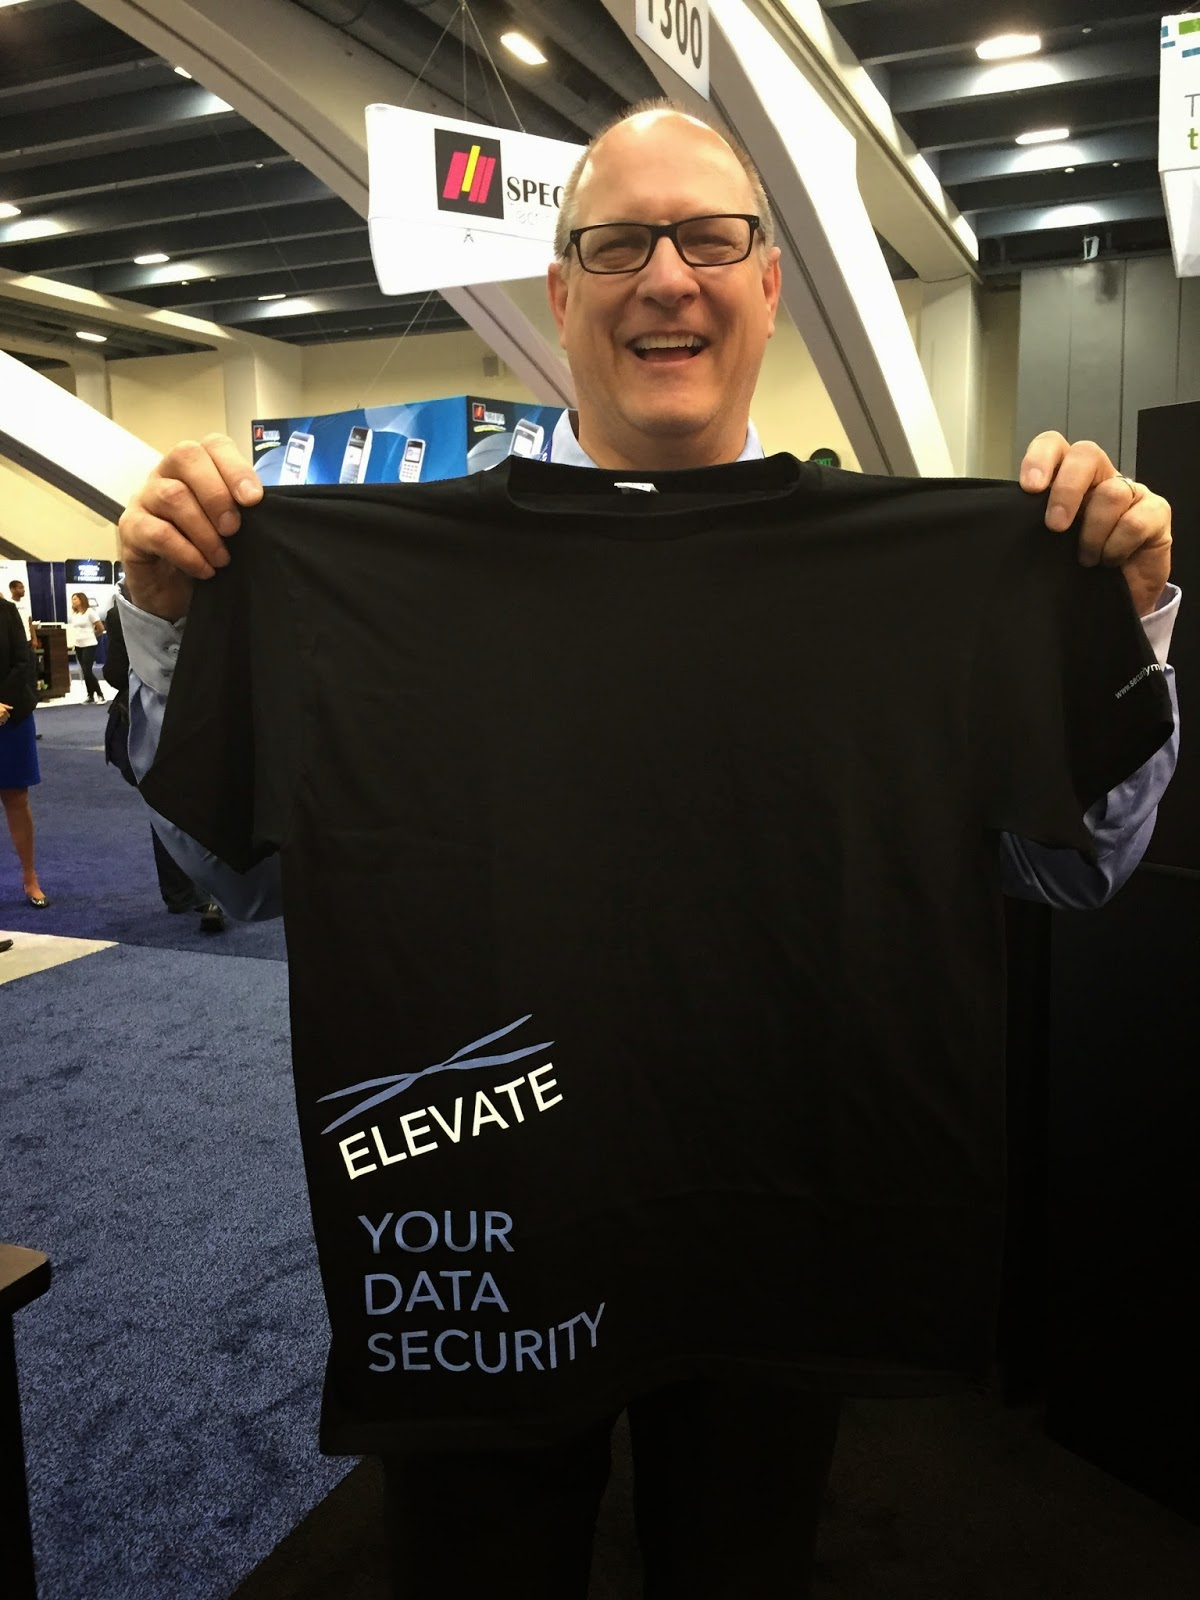 SecurityMetrics Elevate Your Data Security T-Shirts at TRANSACT